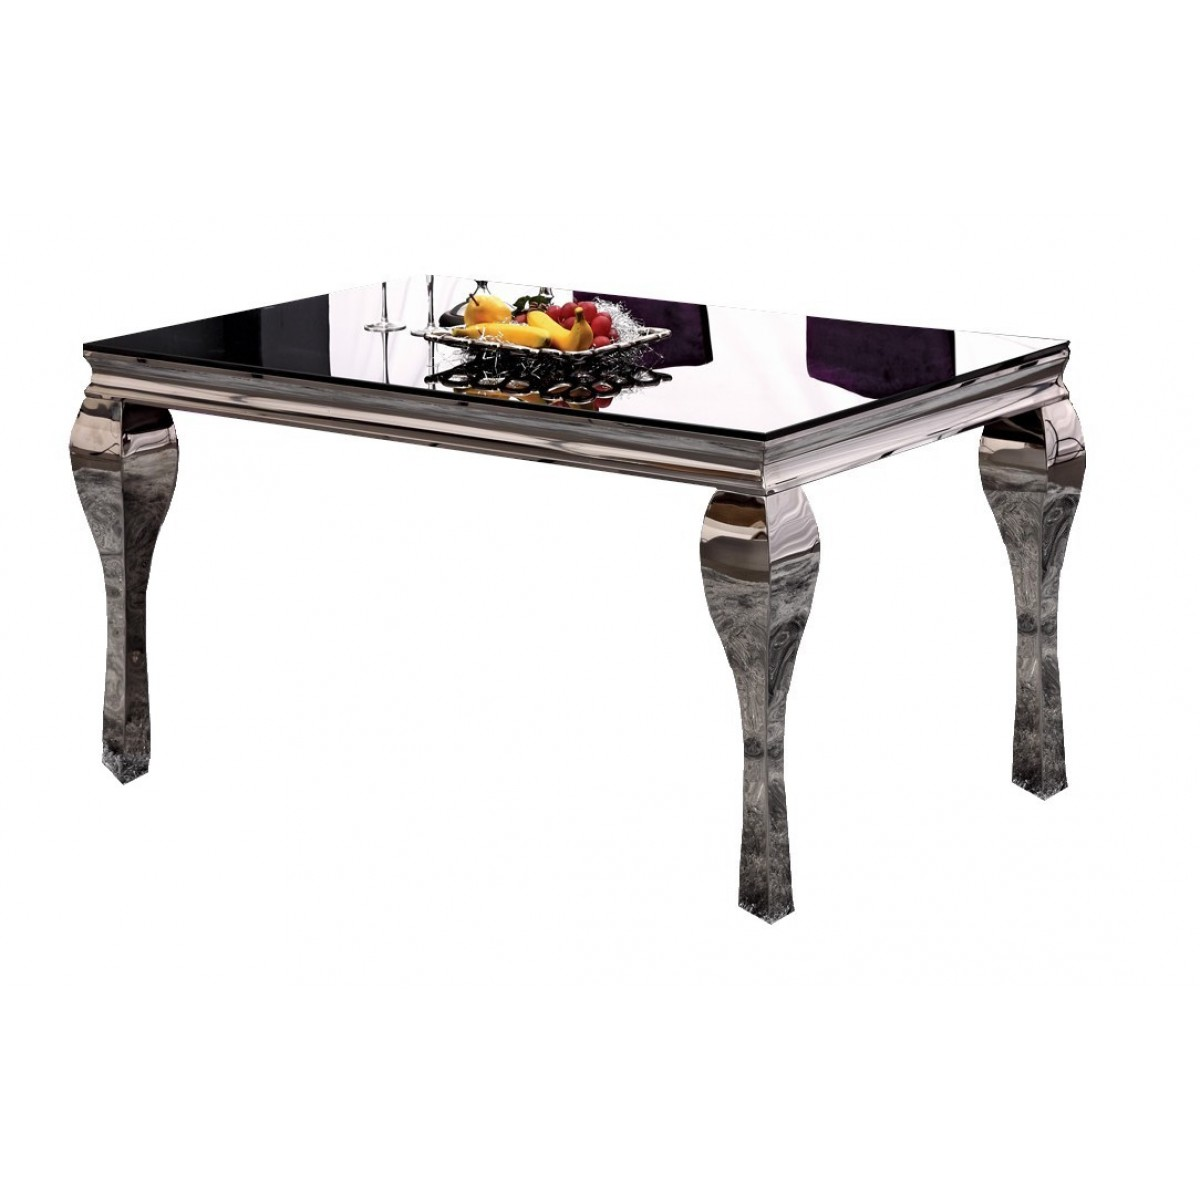 Design table ronde en verre conforama brest 17 table for Conforama table basse blanche